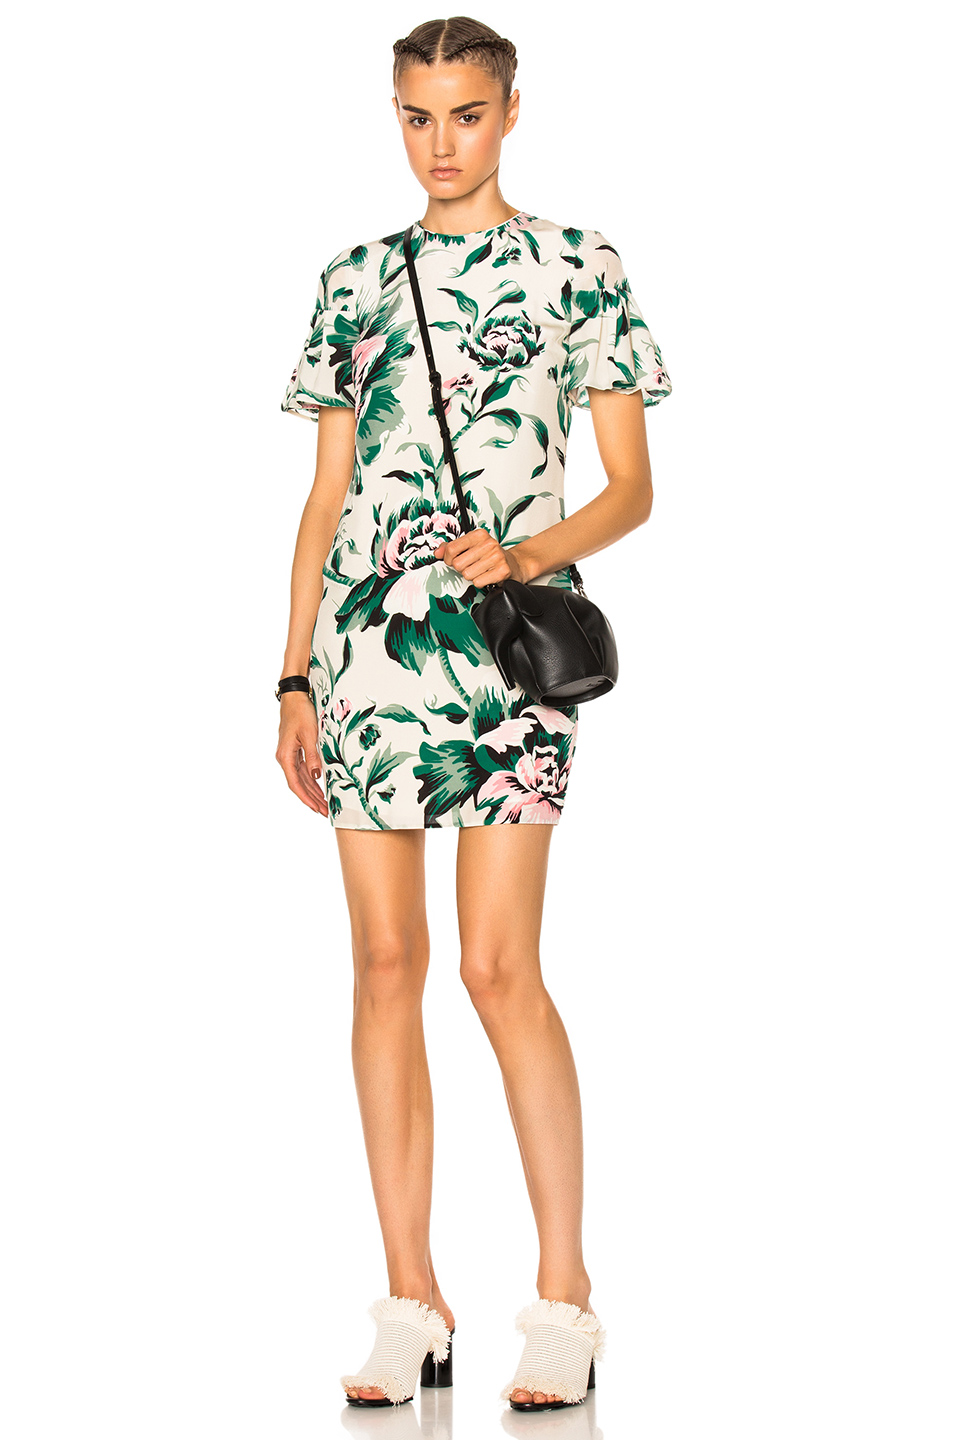 Burberry Flare Sleeve Shift Dress in Floral,Green